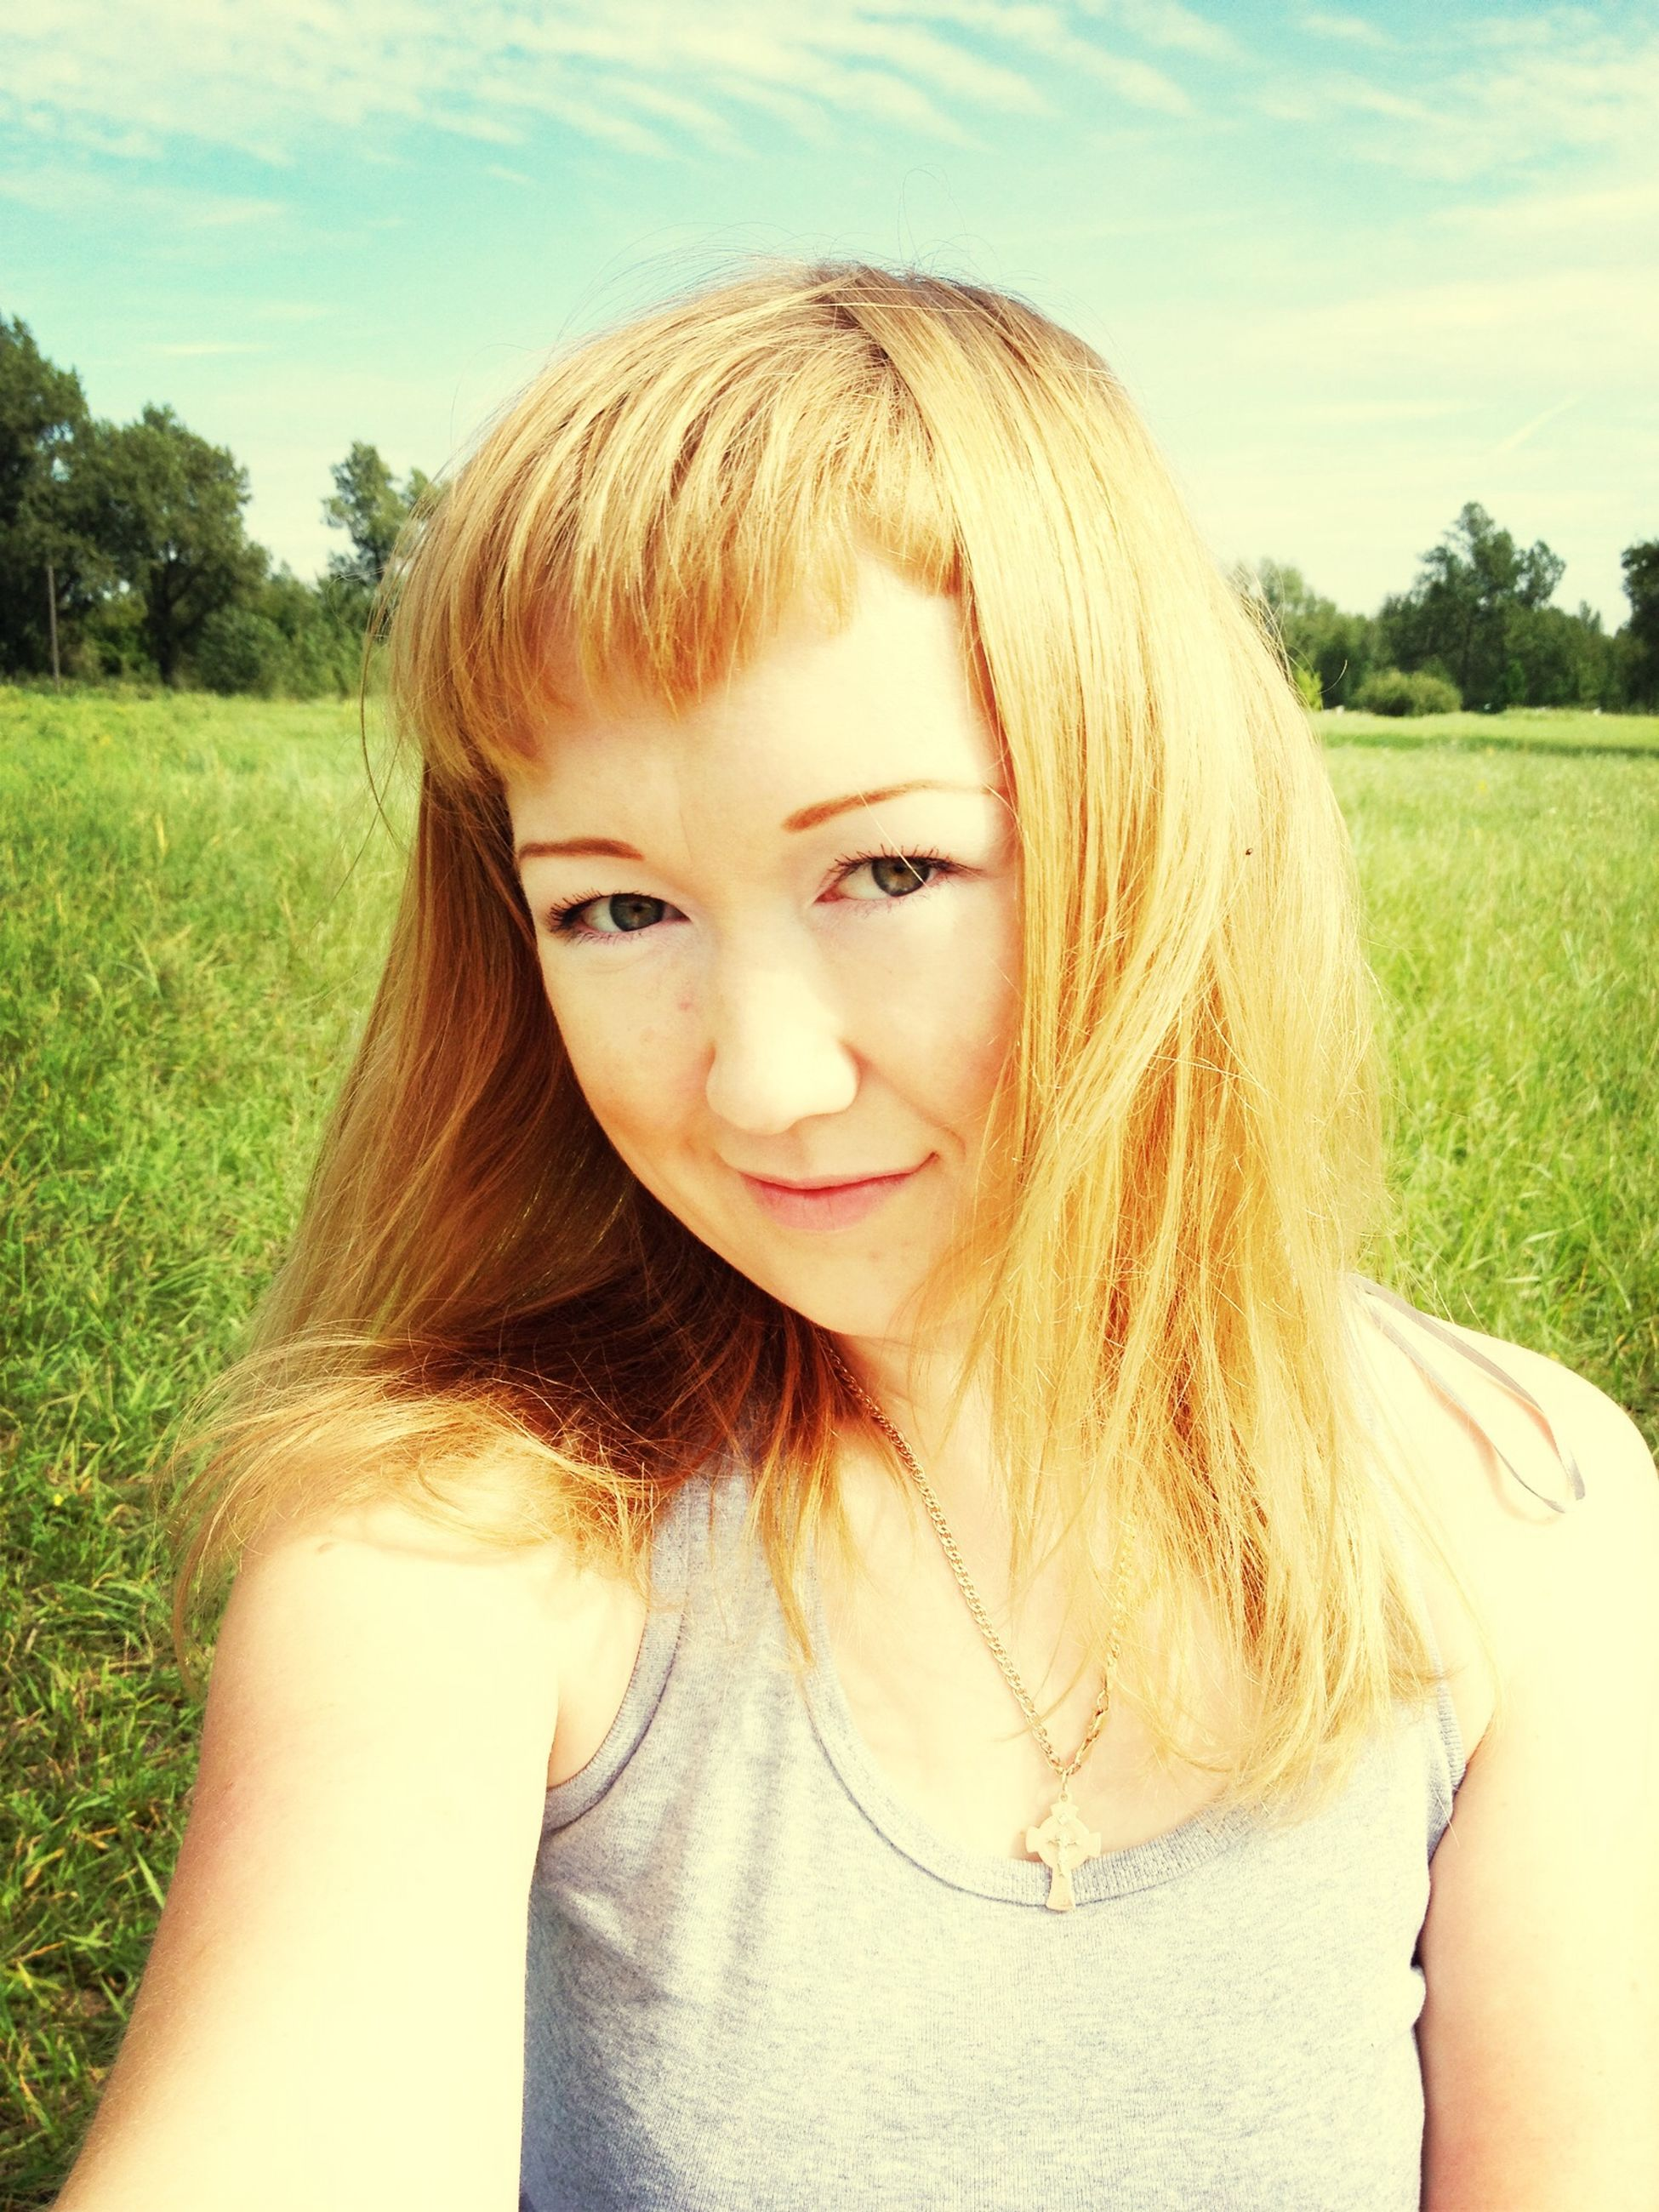 person, grass, young women, lifestyles, long hair, headshot, leisure activity, portrait, young adult, field, looking at camera, blond hair, tree, brown hair, smiling, grassy, sunlight